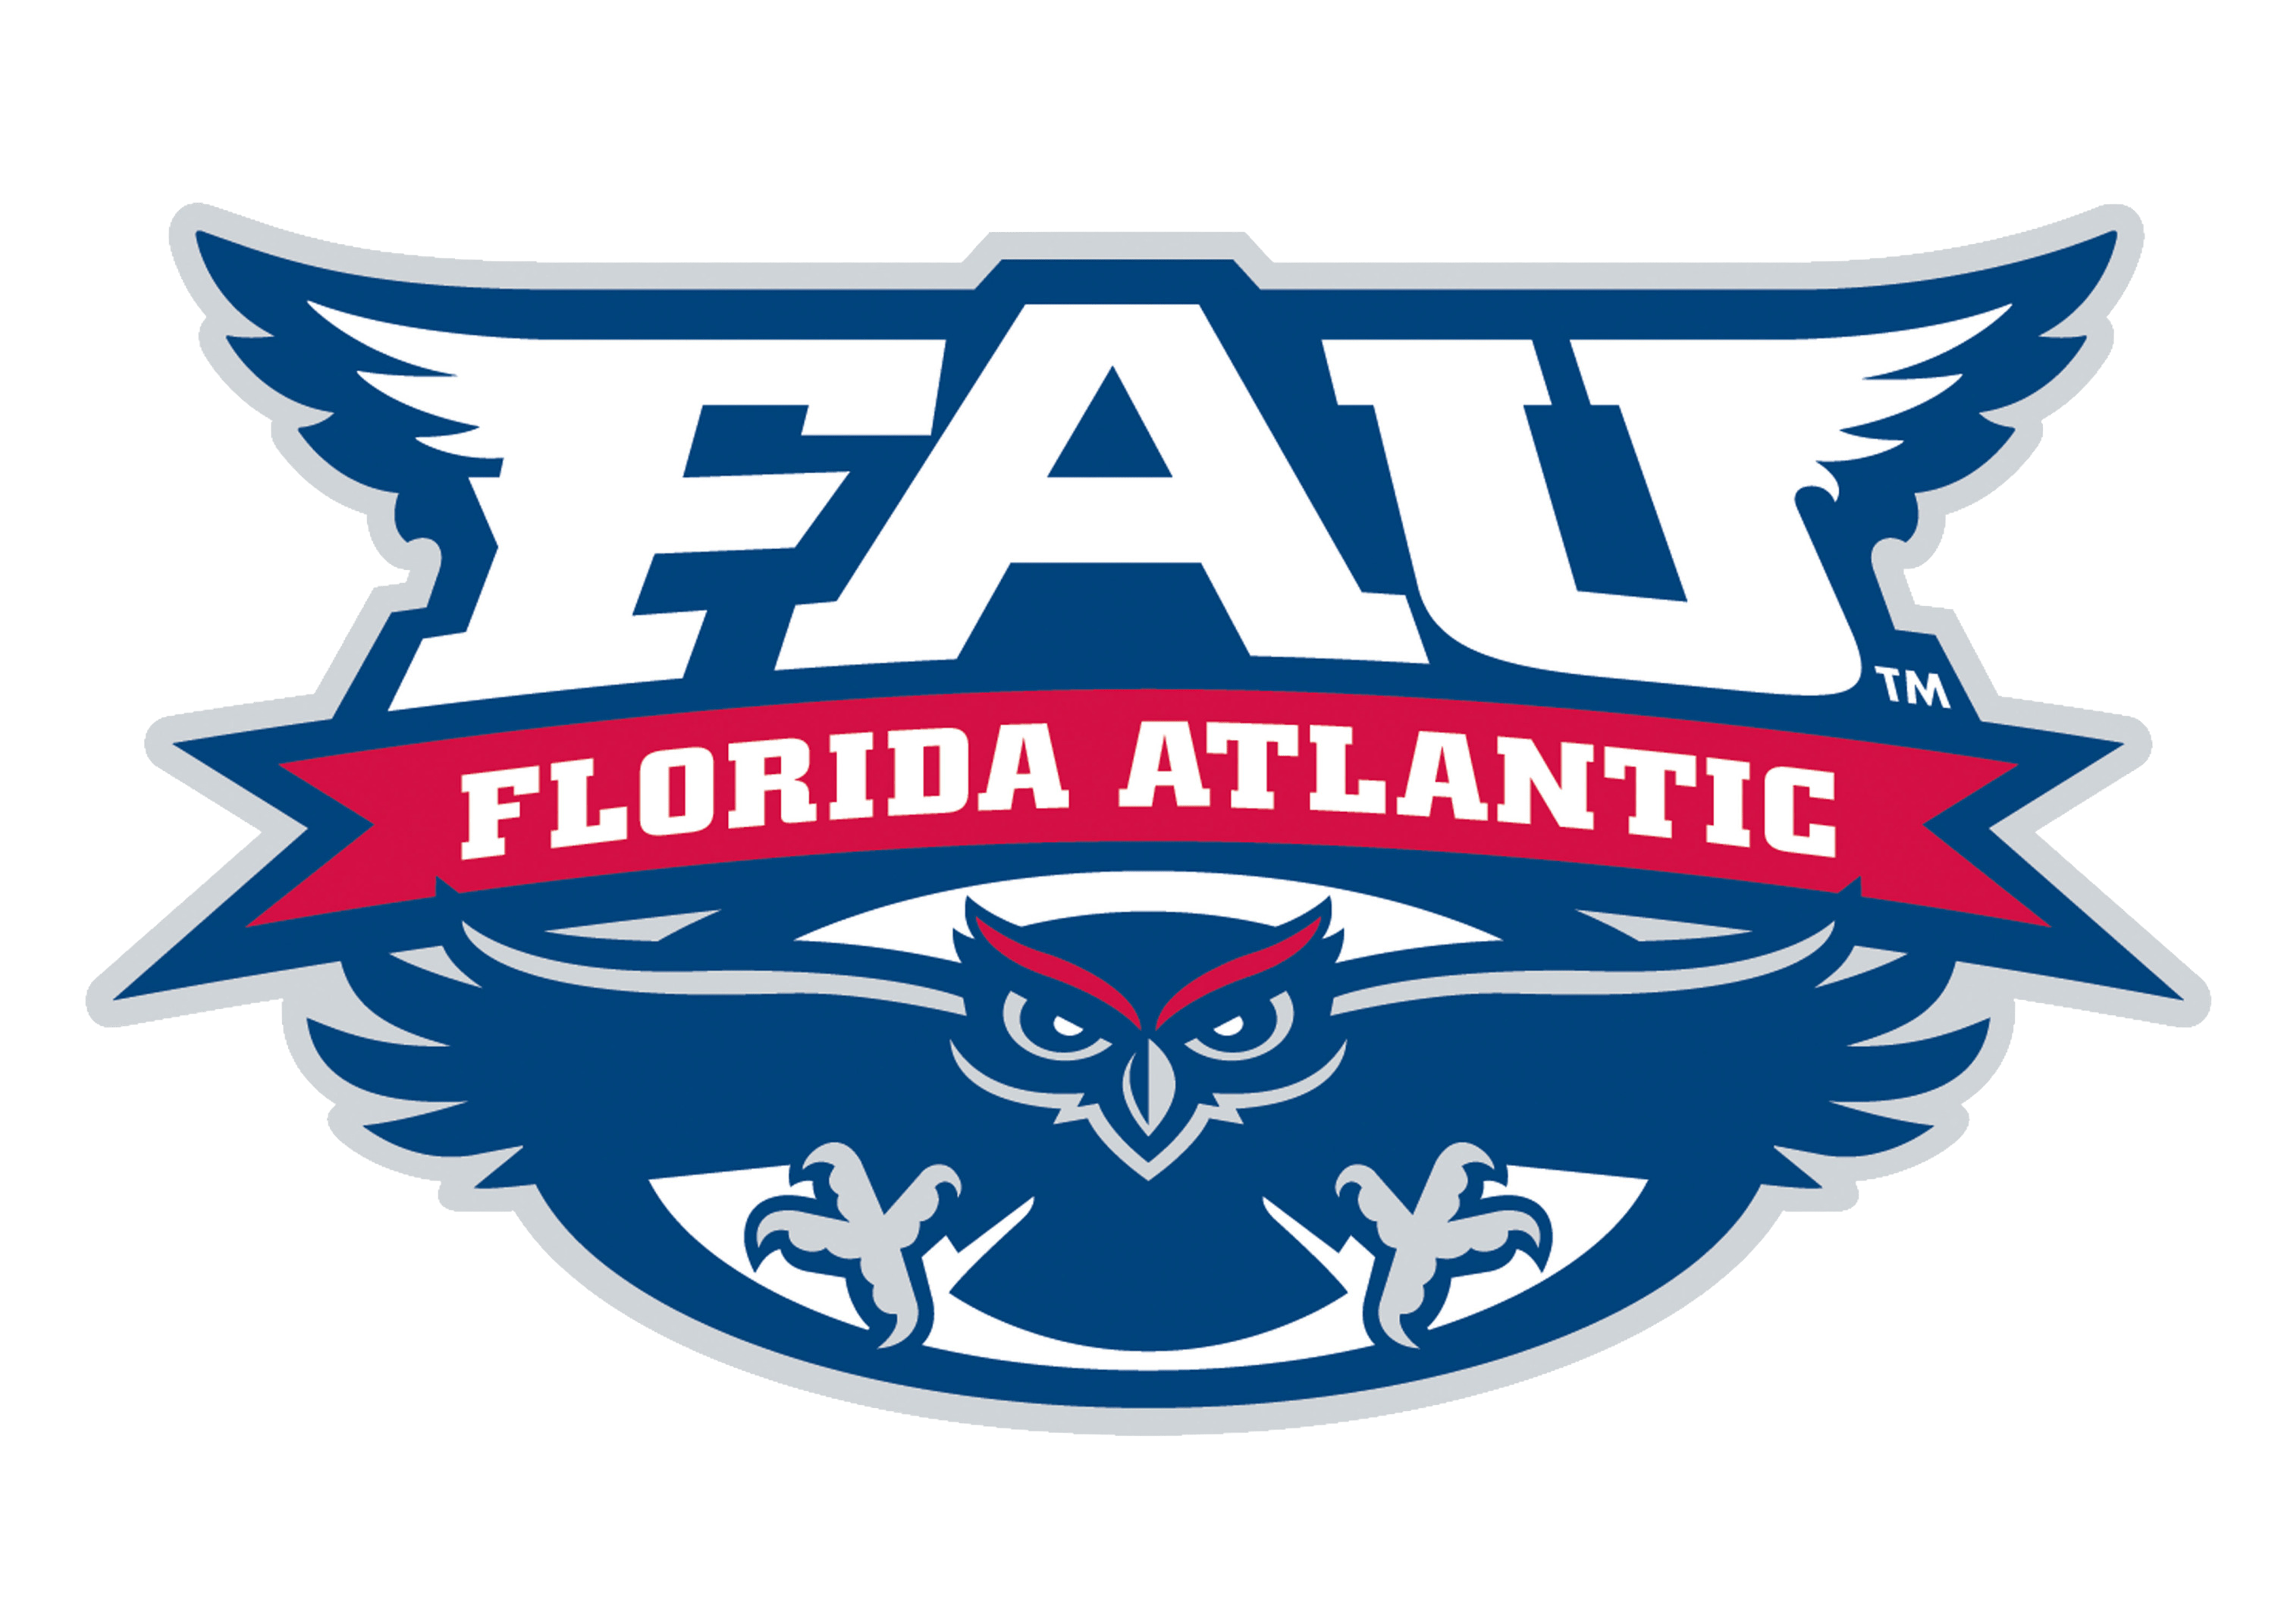 https://tnxlacademy.com/wp-content/uploads/2019/11/FAU-Logo-Clear-Background.png